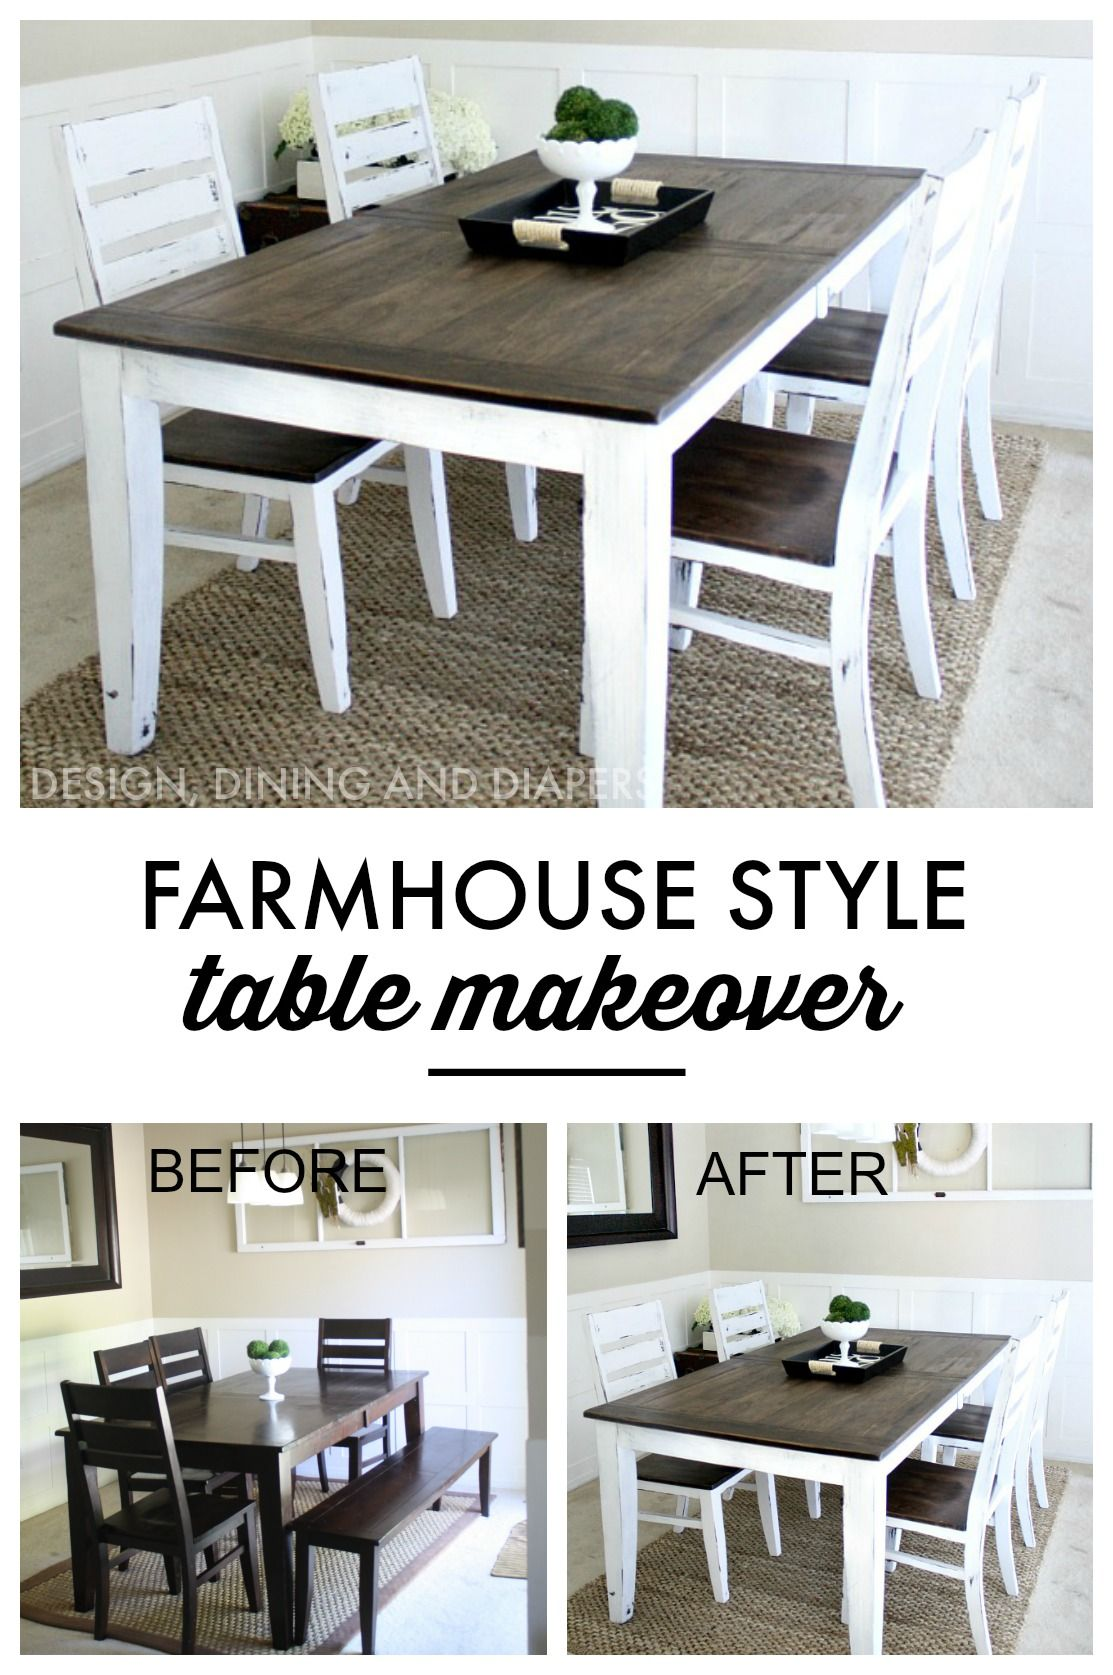 farm style kitchen table Farmhouse Table Makeover